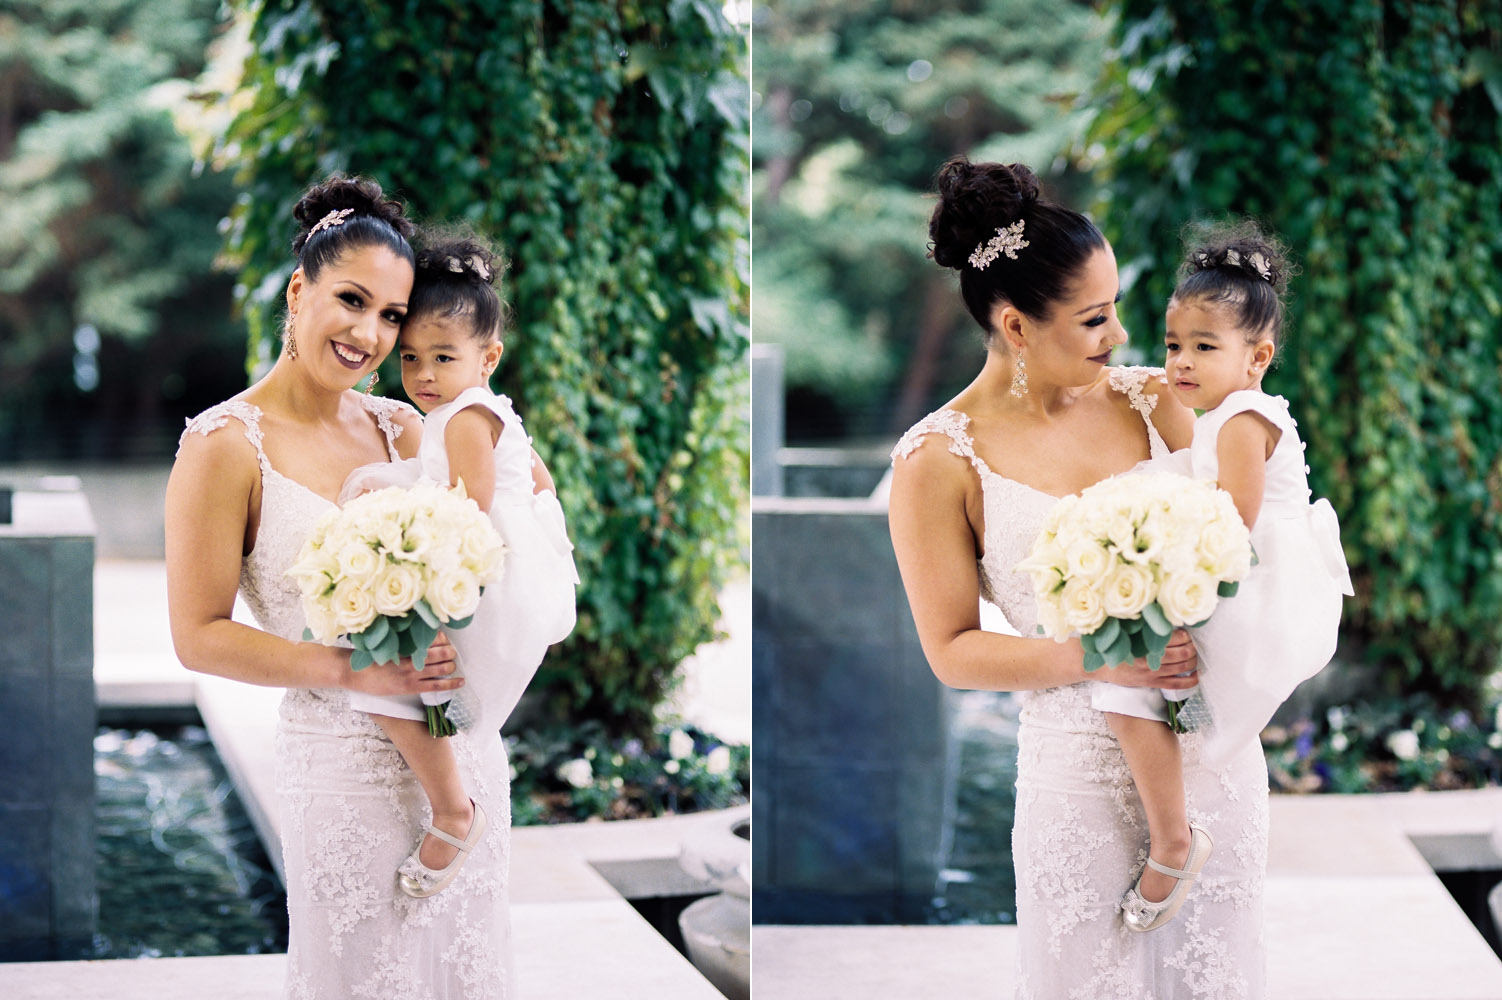 The Bellevue Club Wedding Photography Bride and daughter together